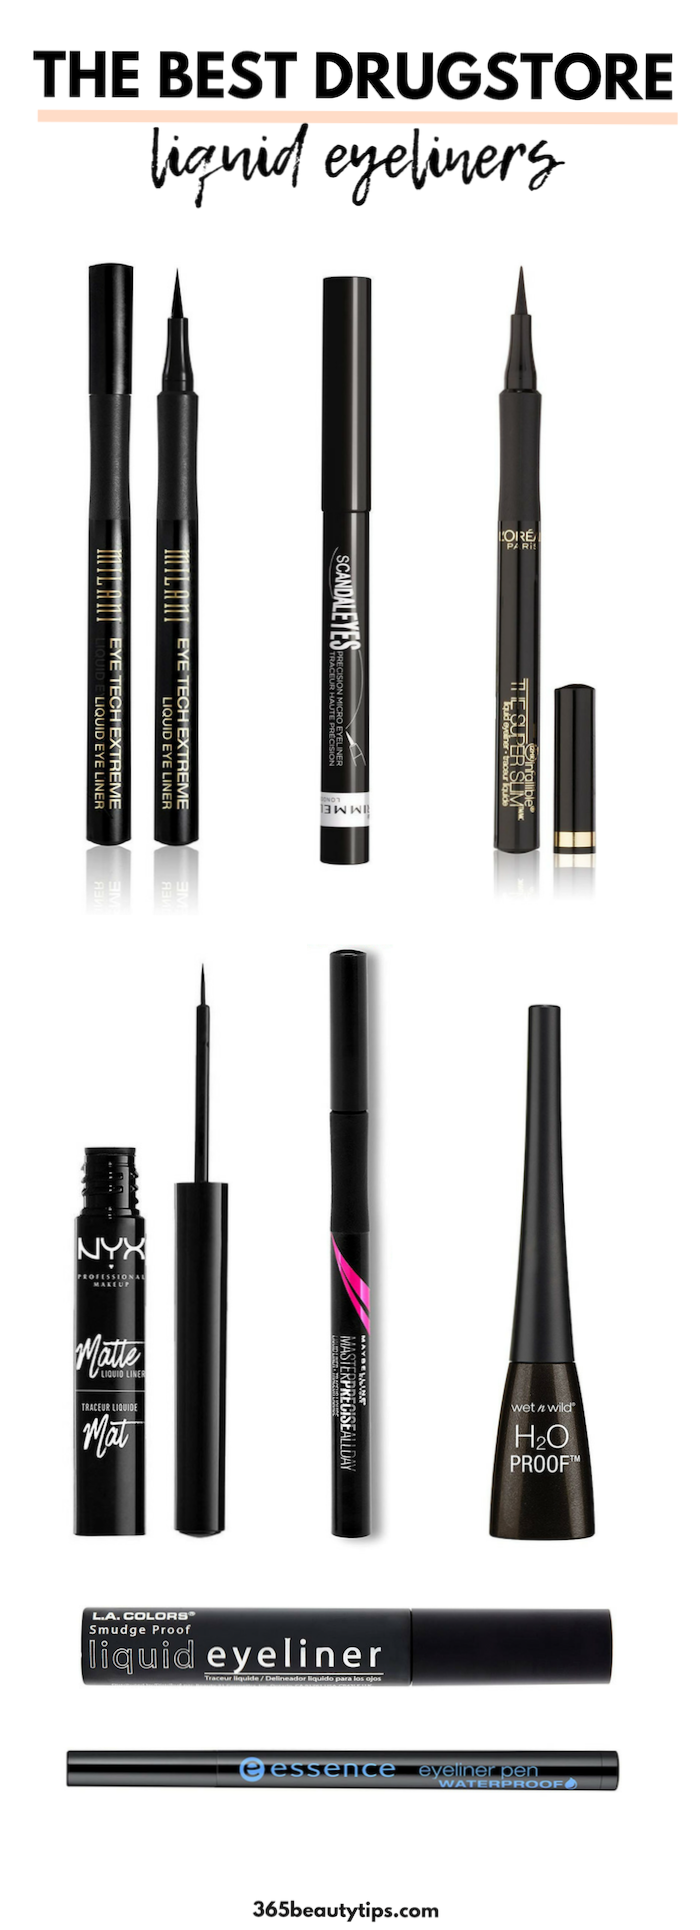 The Best Drugstore Liquid Eyeliners 365beautytips